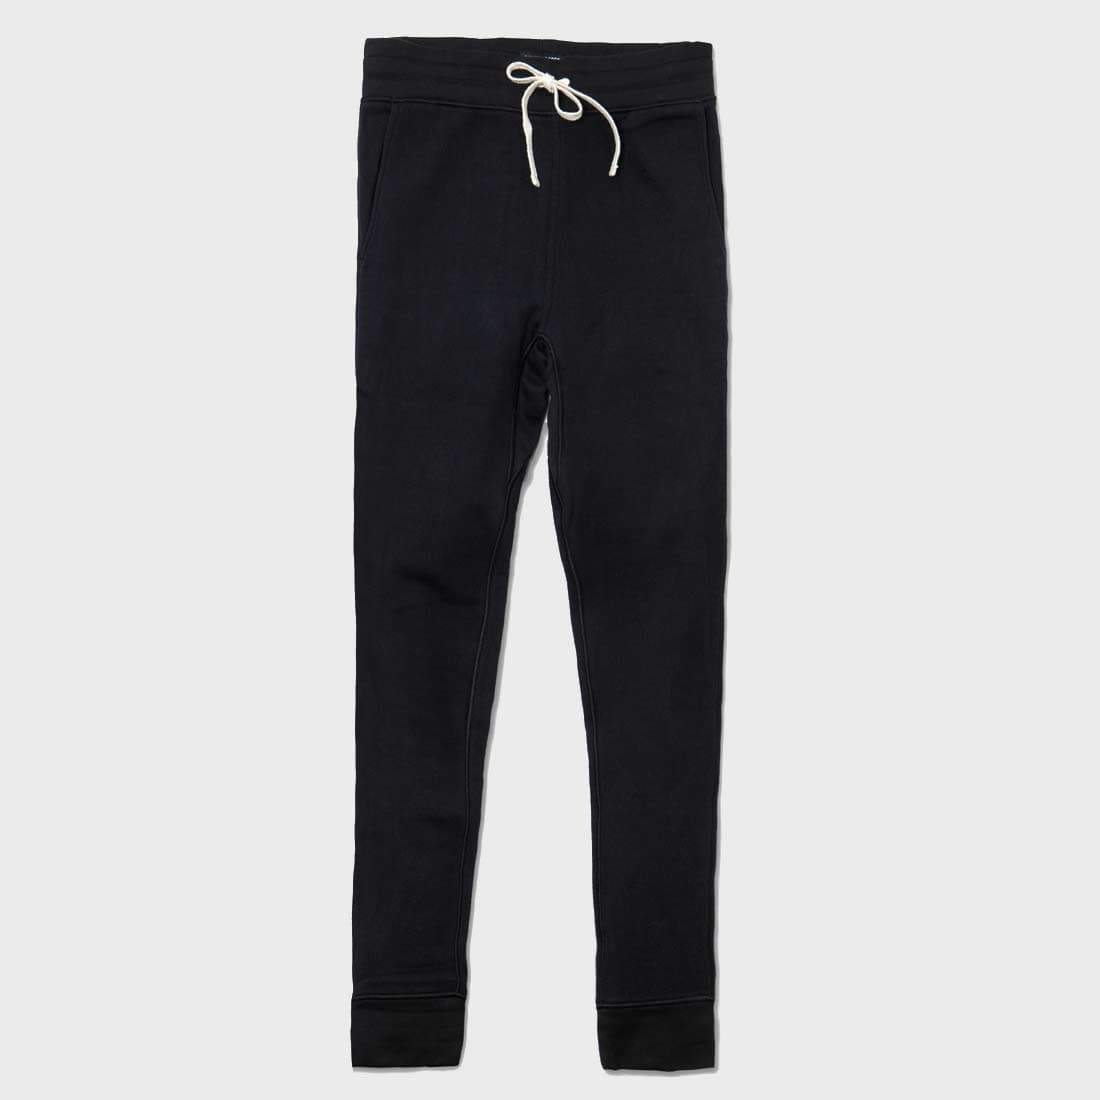 Richer Poorer Sweatpant Black